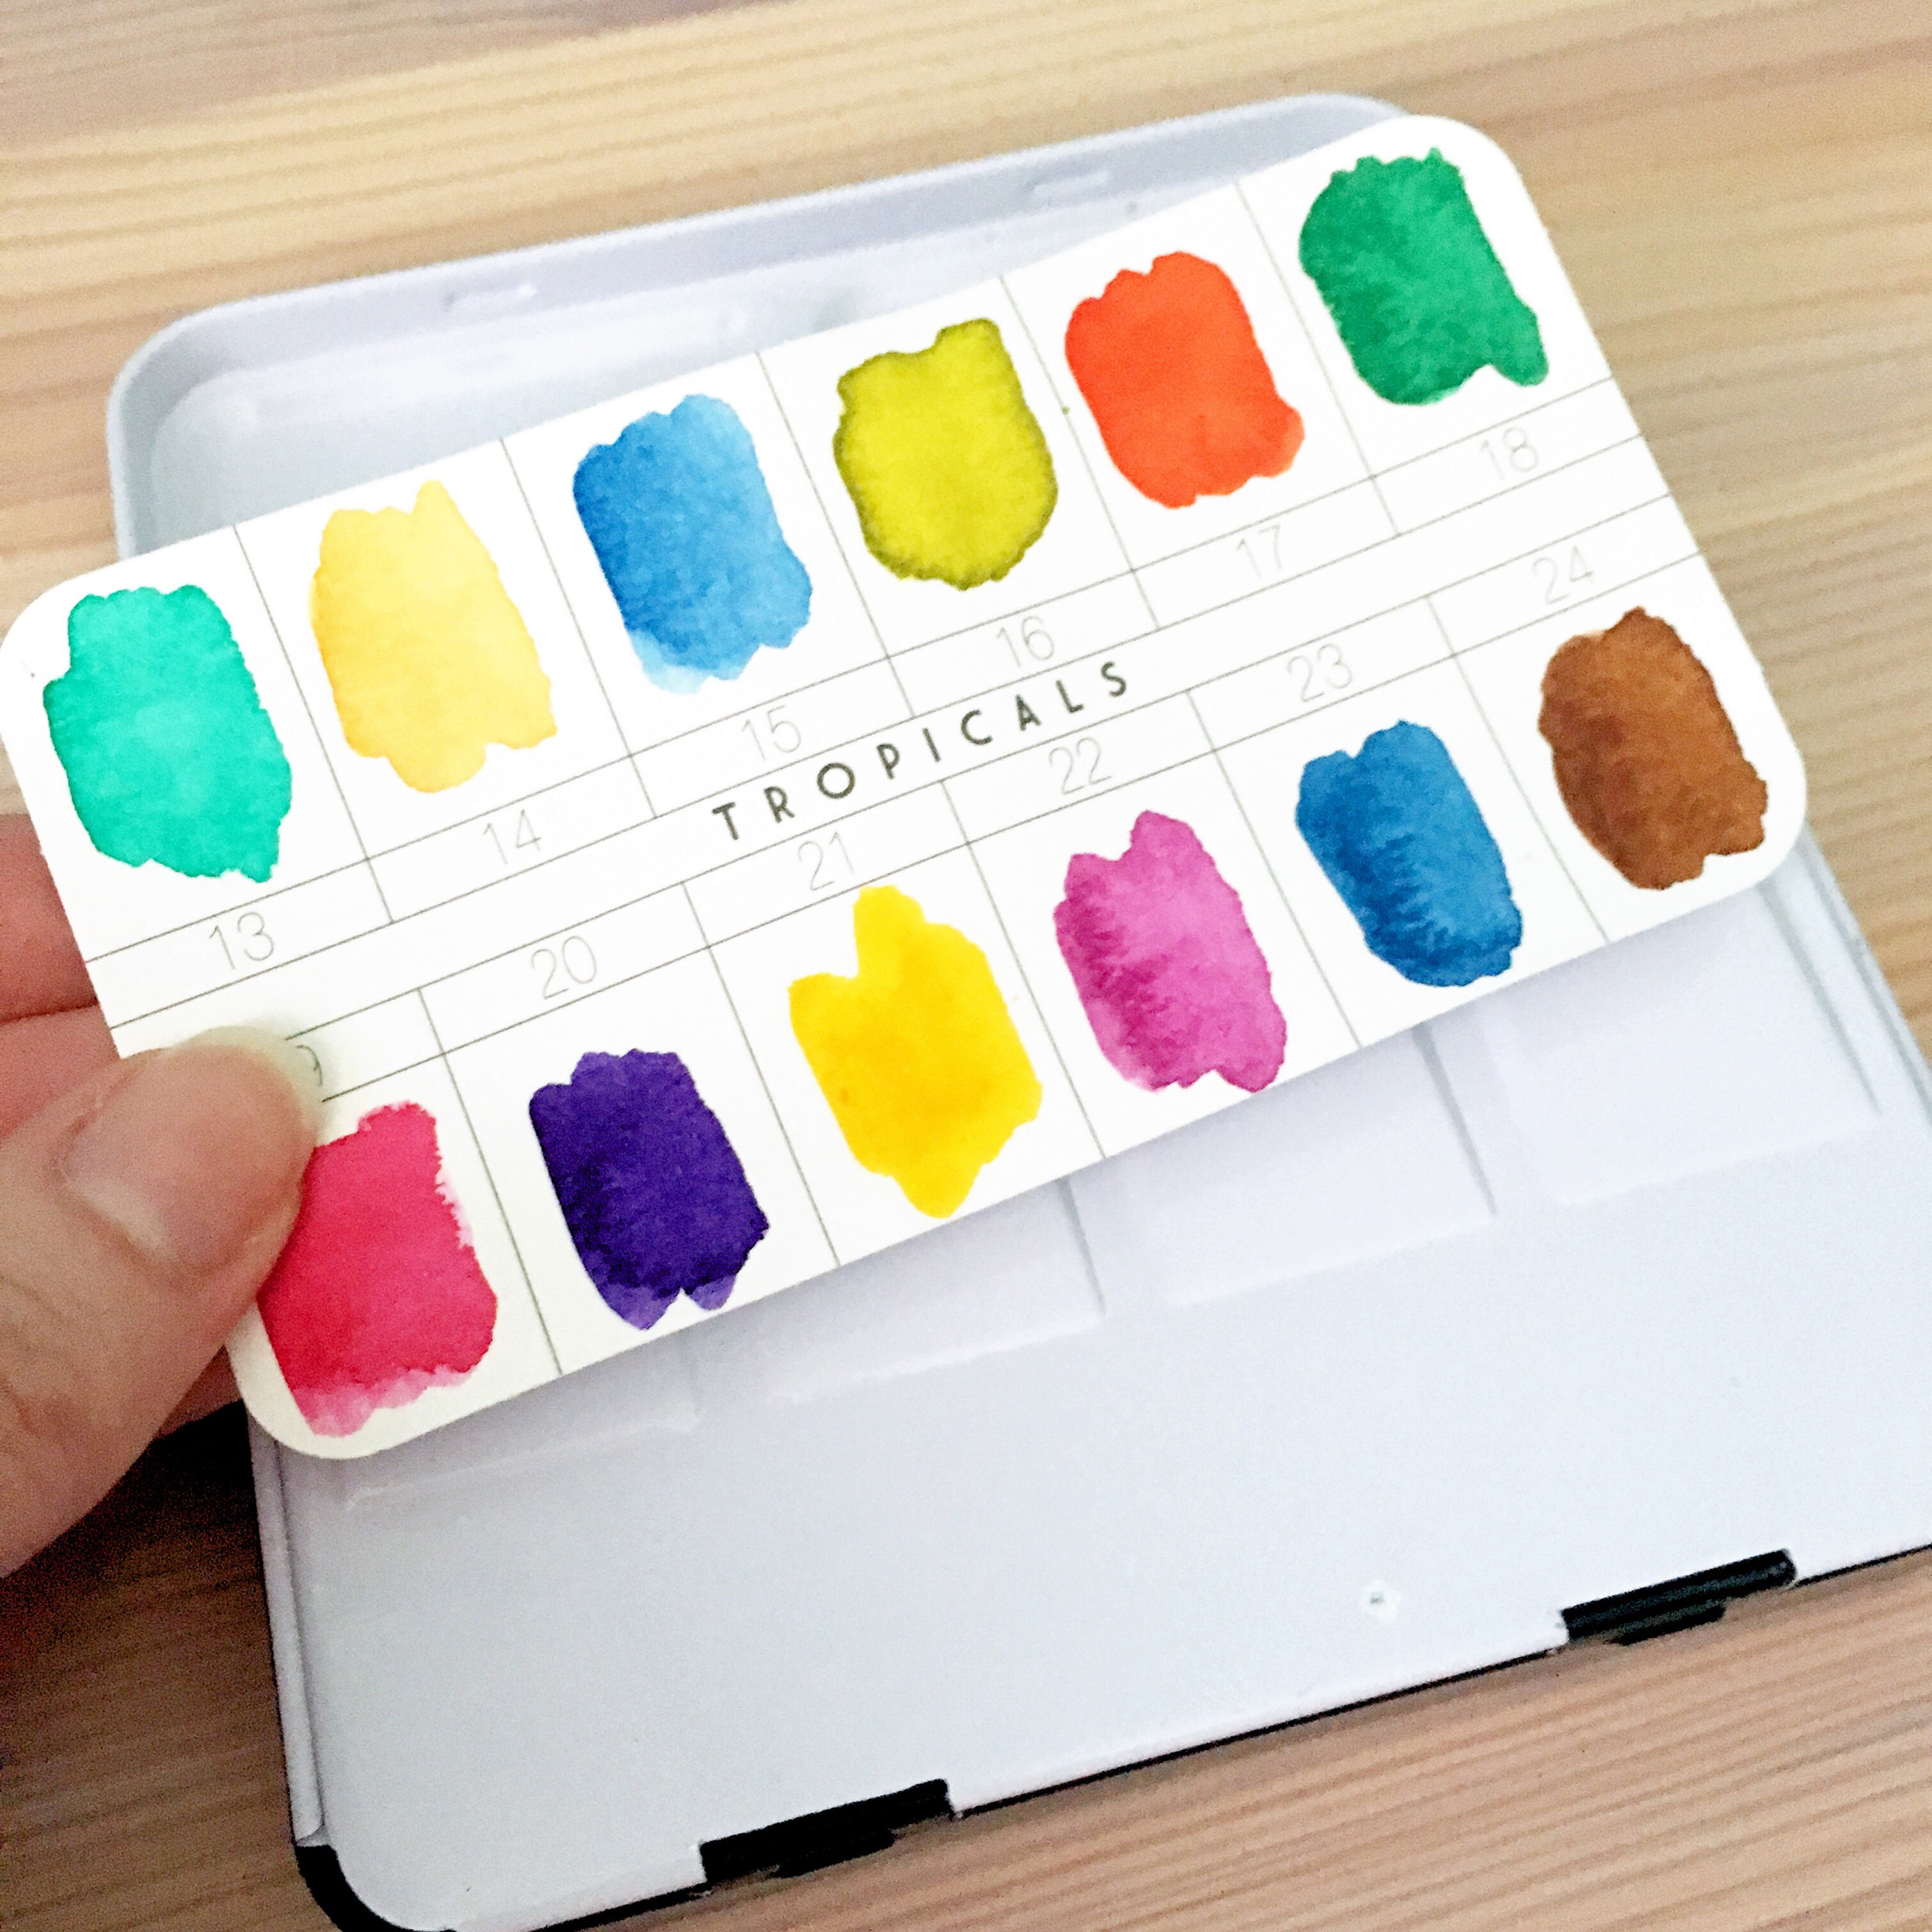 Dani Claire. Artsy Goodness. My New Favorite Watercolor Set. Prima Watercolor Confections. Watercolor Art. Watercolor Paint. Hand lettering. Hand letterer.